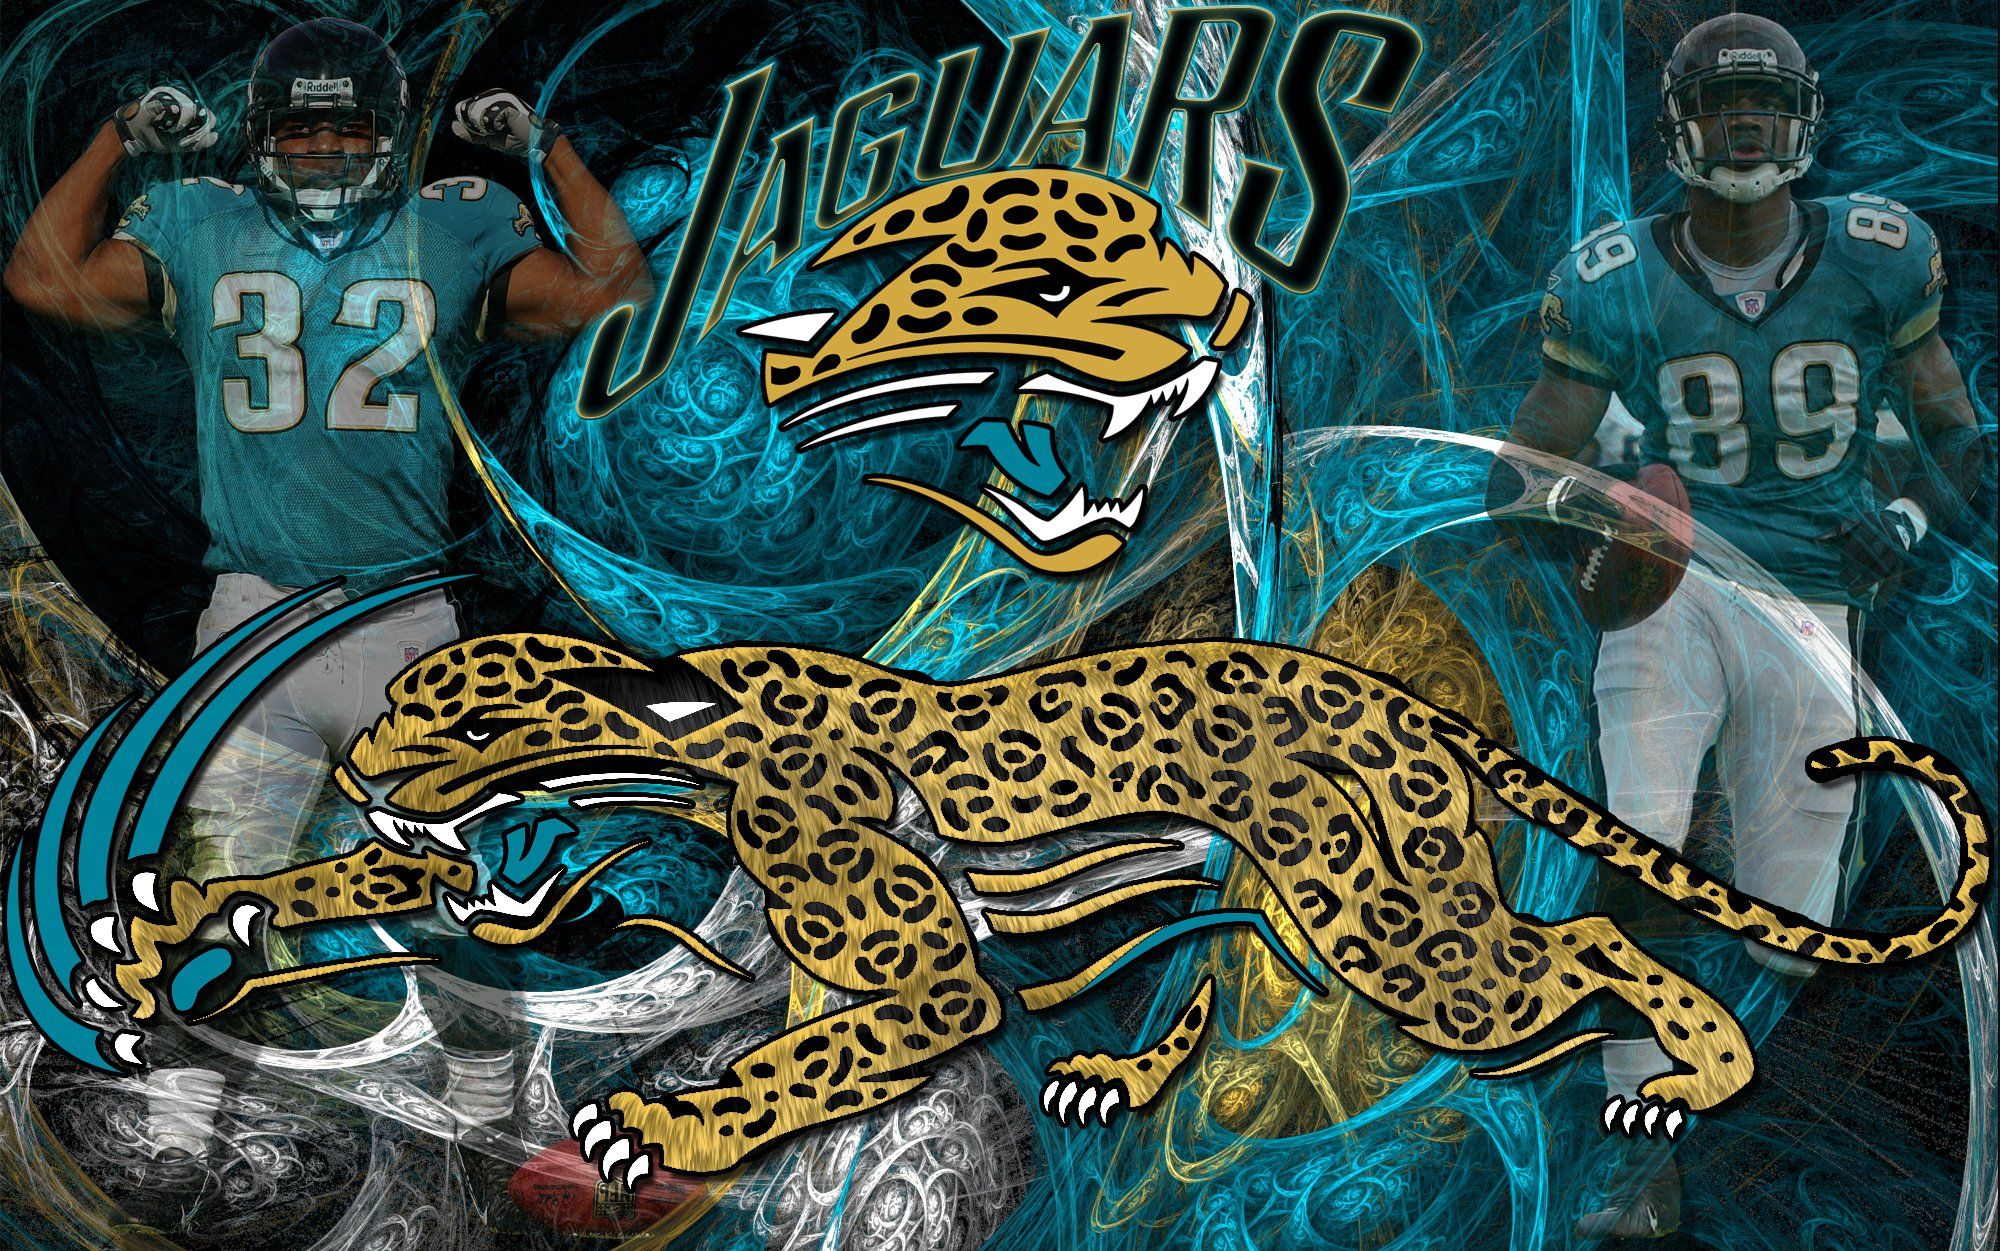 Jacksonville Jaguars Wicked Wallpaper Download Wallpaper 2000x1251